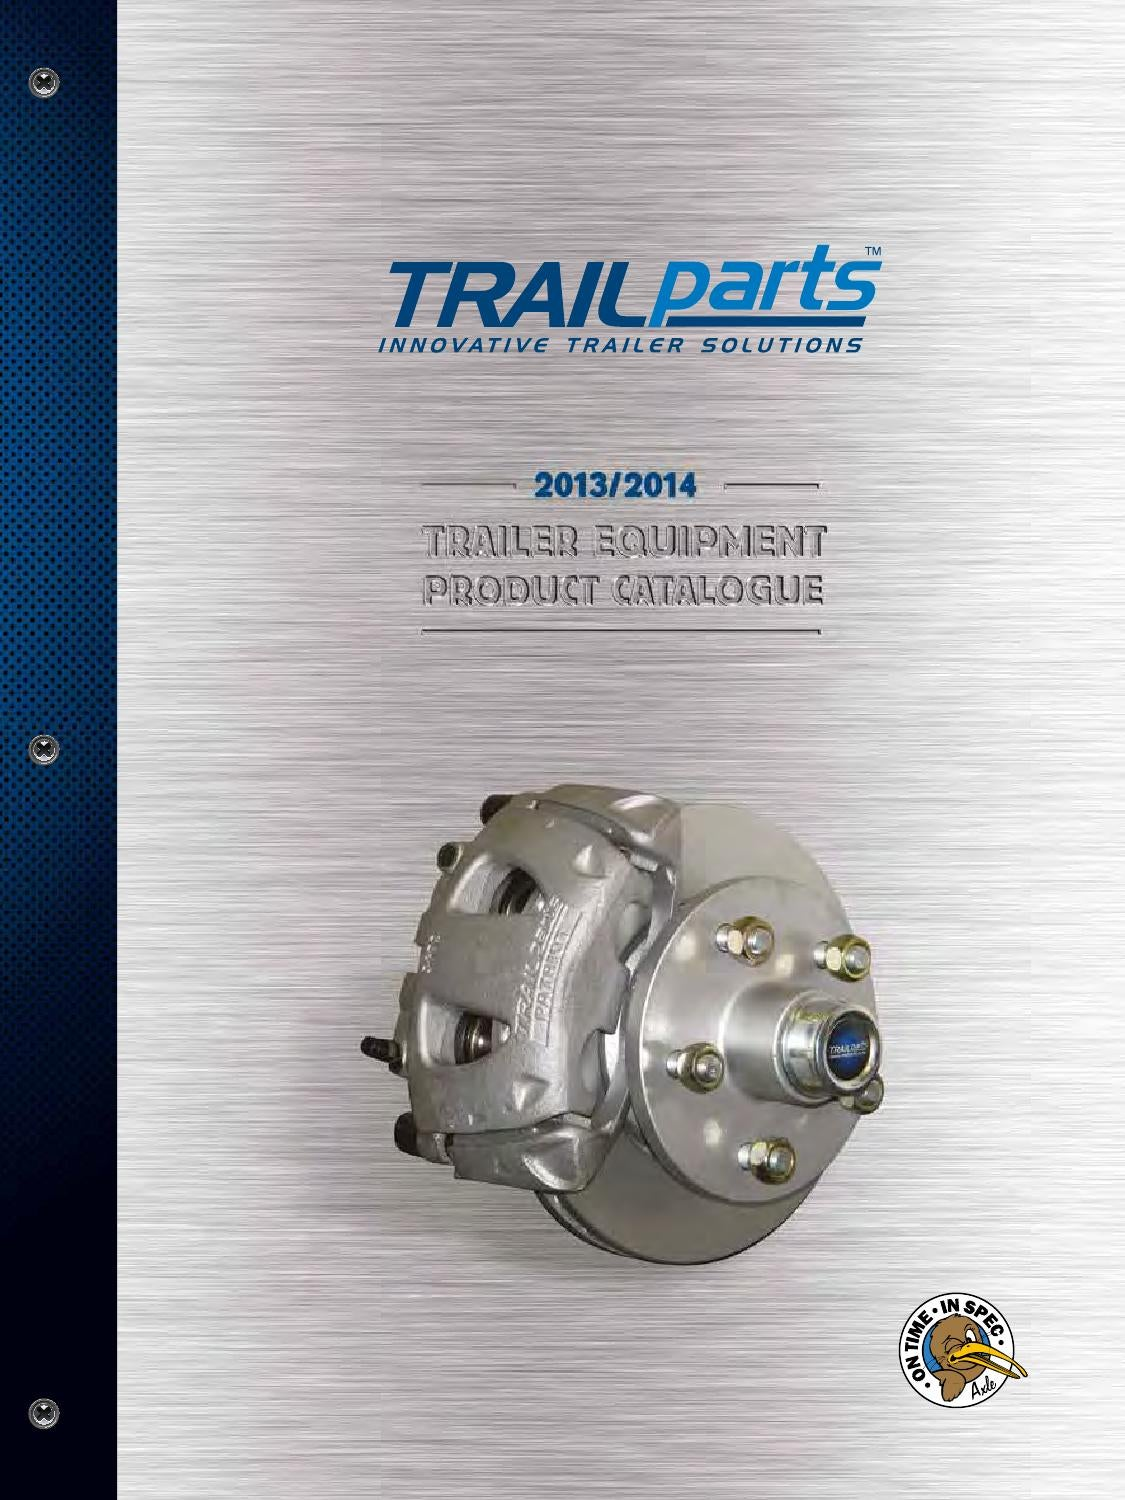 30m X 5 Core Cable Wiring Wire Trailer Parts Lights Trailparts 2013 Catalogue By Benefitz Issuu